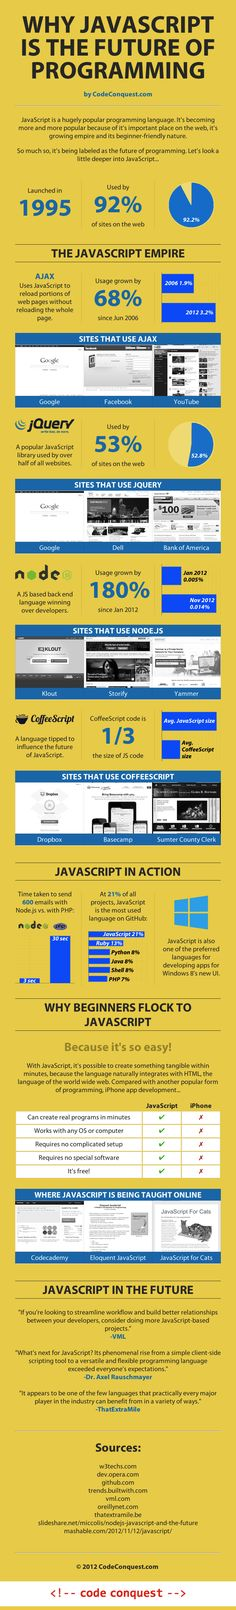 Why JavaScript is the Future of Programming [Infographic]